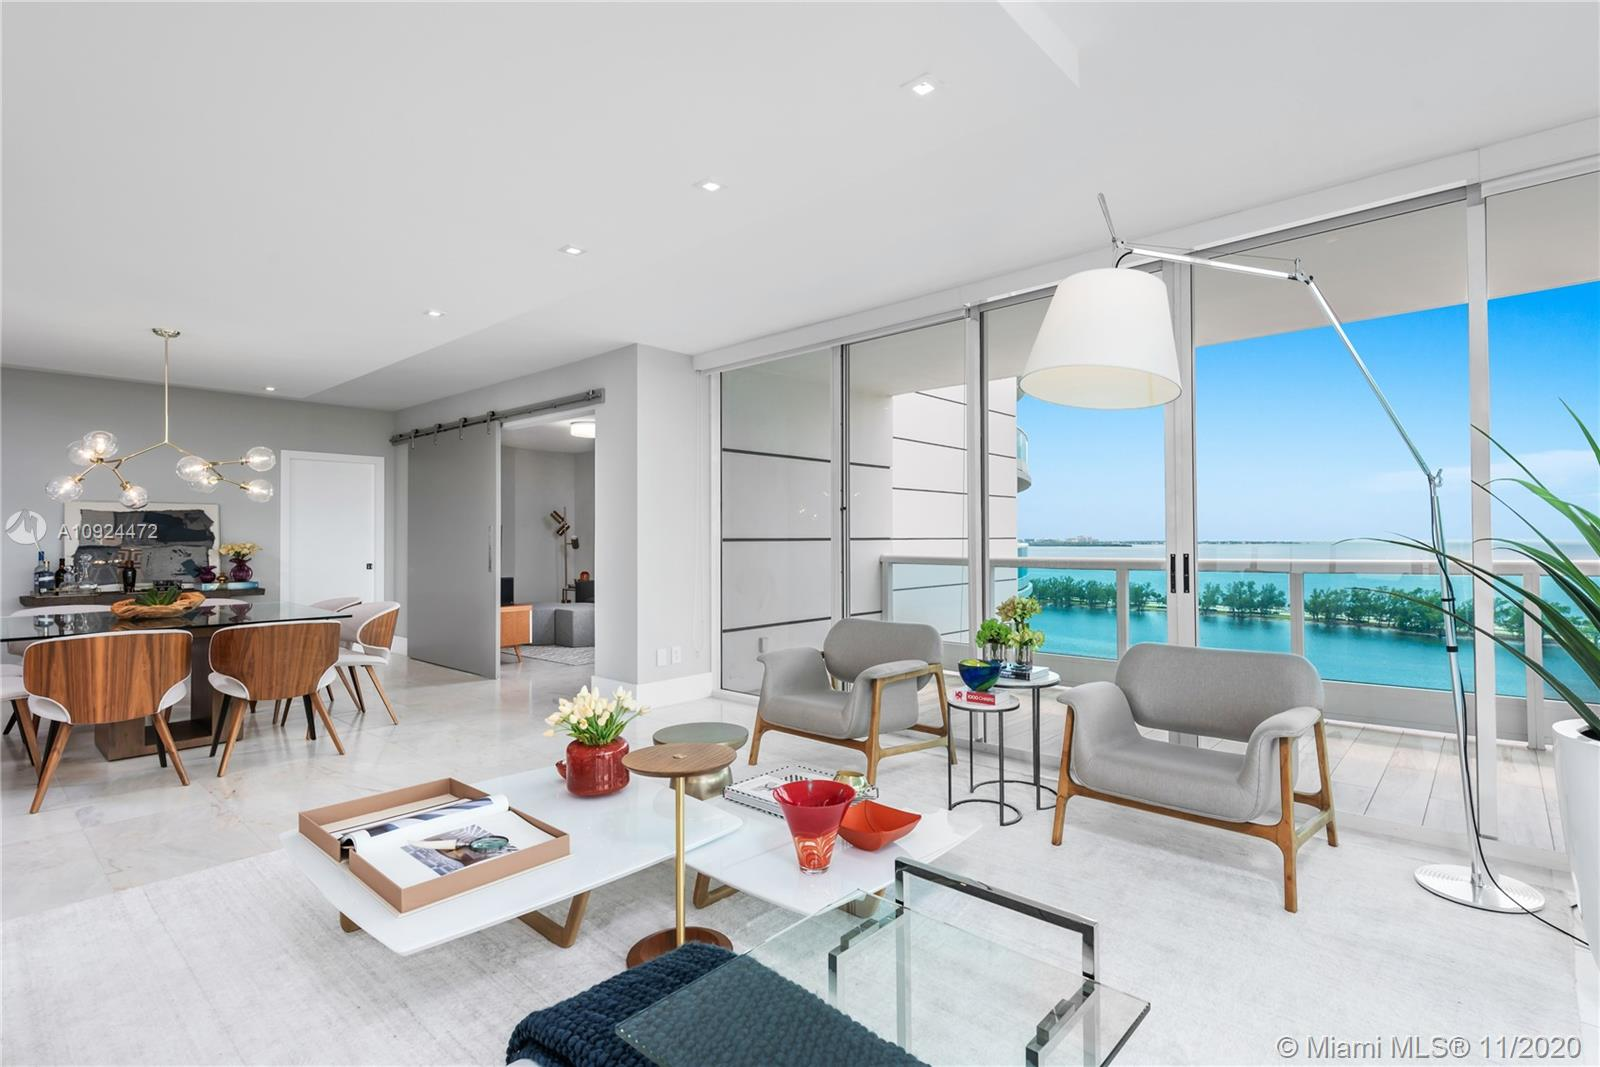 Located in the Majestic Brickell Green Corridor, Bristol Tower by Ugo Columbo/Revuelta is in close range to exquisite fine dining and entertainment of downtown Brickell. Only minutes away from I-95.  This sun-filled 3 bed/3 Bath/laundry, ultra luxurious mint newly renovated apartment is furniture ready, italian kitchen equipped with the finest appliances (Wolf, Subzero), dinnerware, glassware, all included to make your self at home, TURN KEY READY for immediate occupancy.  Quartz countertops, marble floors throughout, grand balconies with water views to KB Bay, Coral Gables, Downton Brickell Skyline. Bedrooms have exquisite hard wood flooring, italian doors,  bathrooms done to perfection.  Italian closets, storage galore.. Not one detail spared in this remodel.